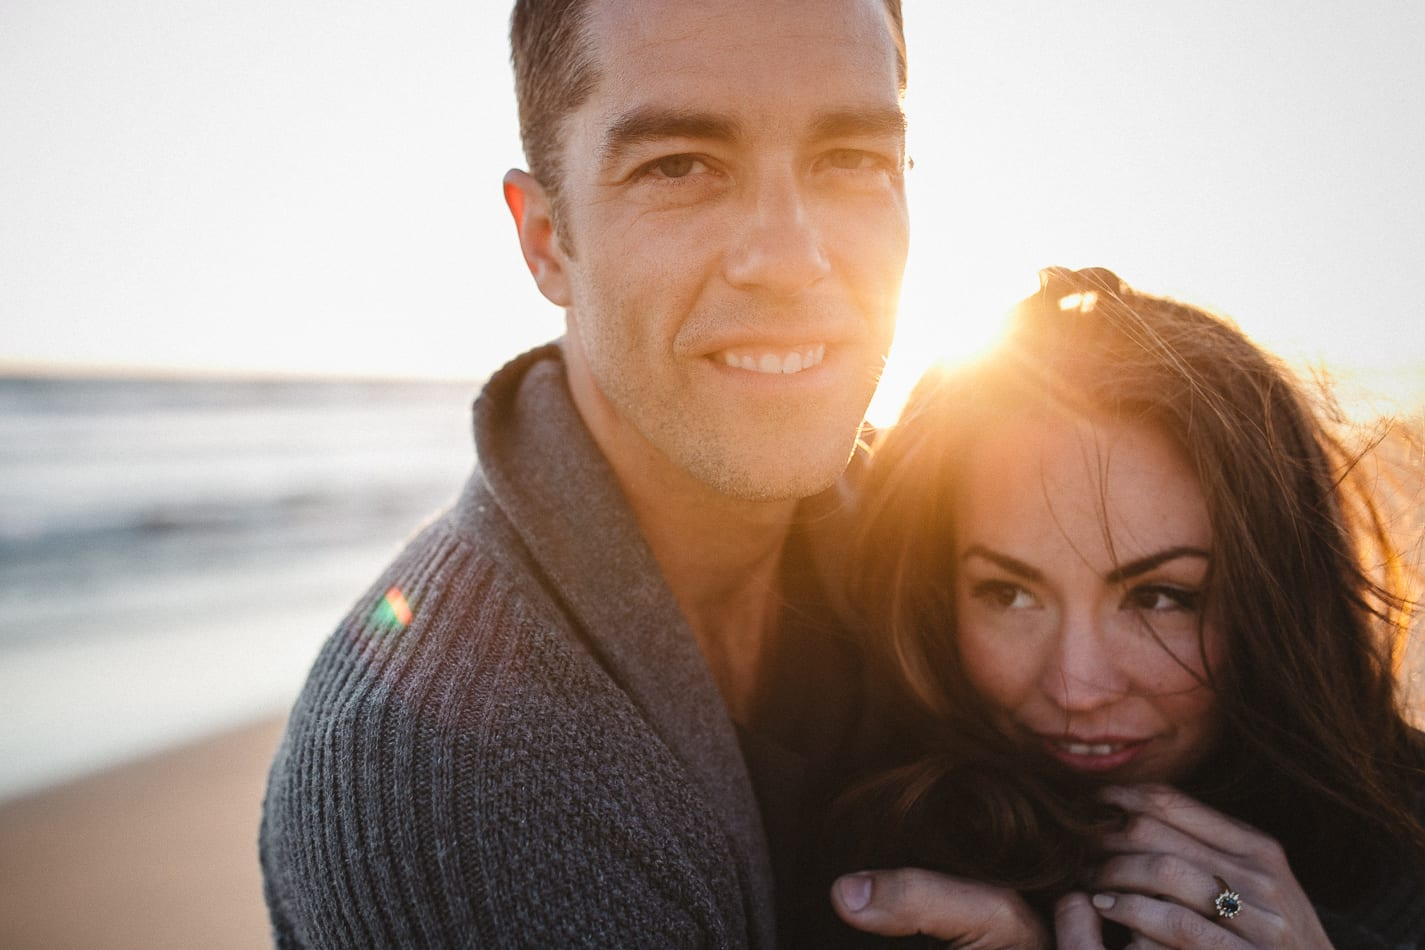 jason-alyssa-huntington-beach-california-engagement-photographer-16